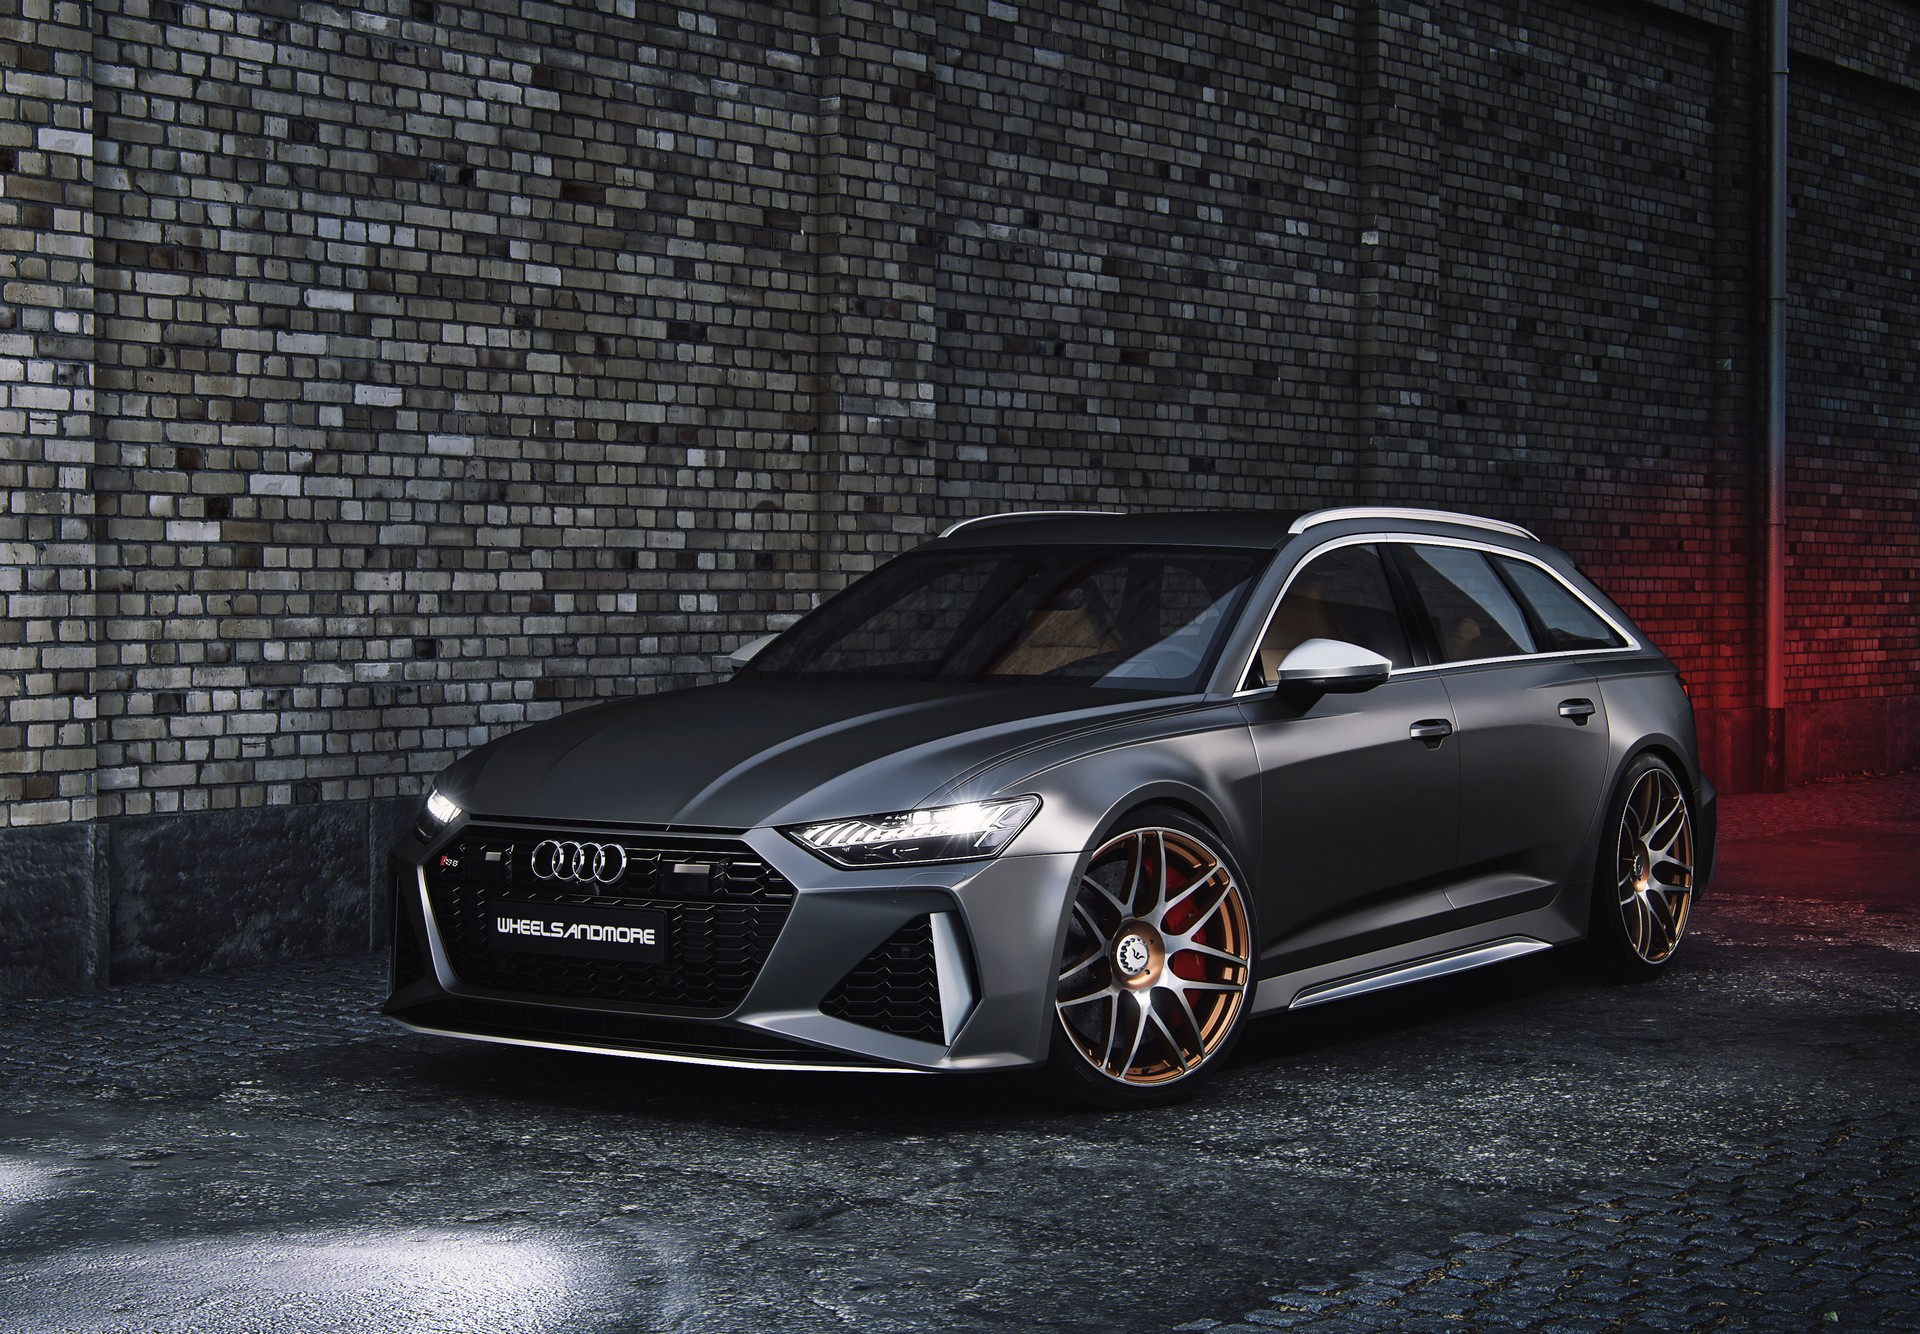 Tuned 2020 Audi Rs6 Avant Has More Power Than The Original Bugatti Veyron 16 4 Carscoops